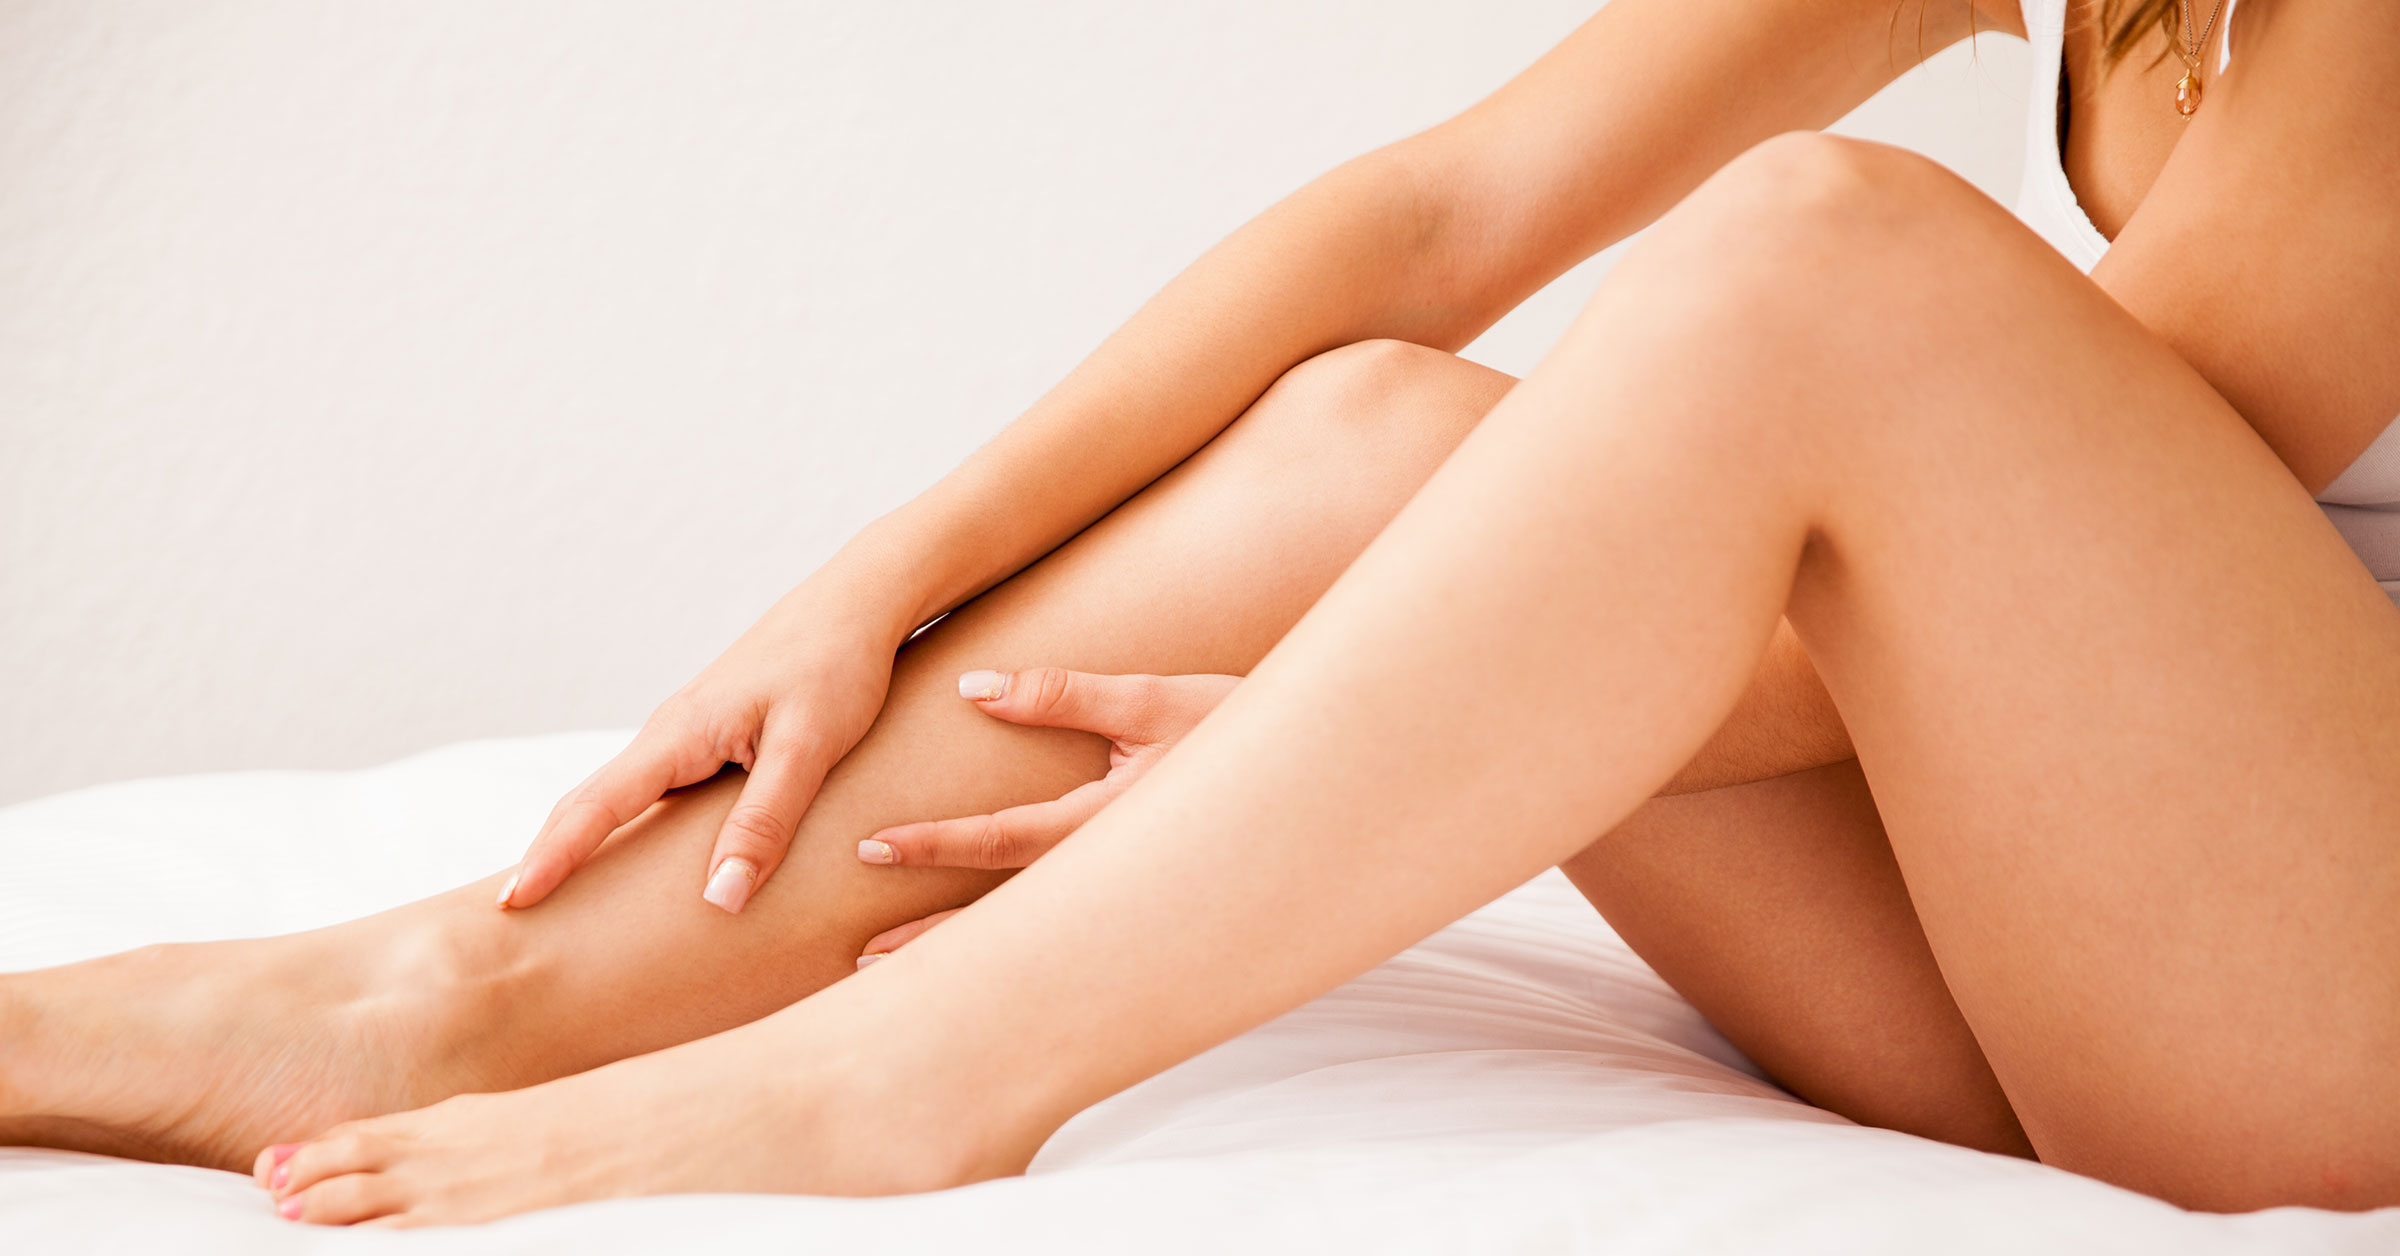 4 Reasons Your Should Try Vectus Laser Hair Removal